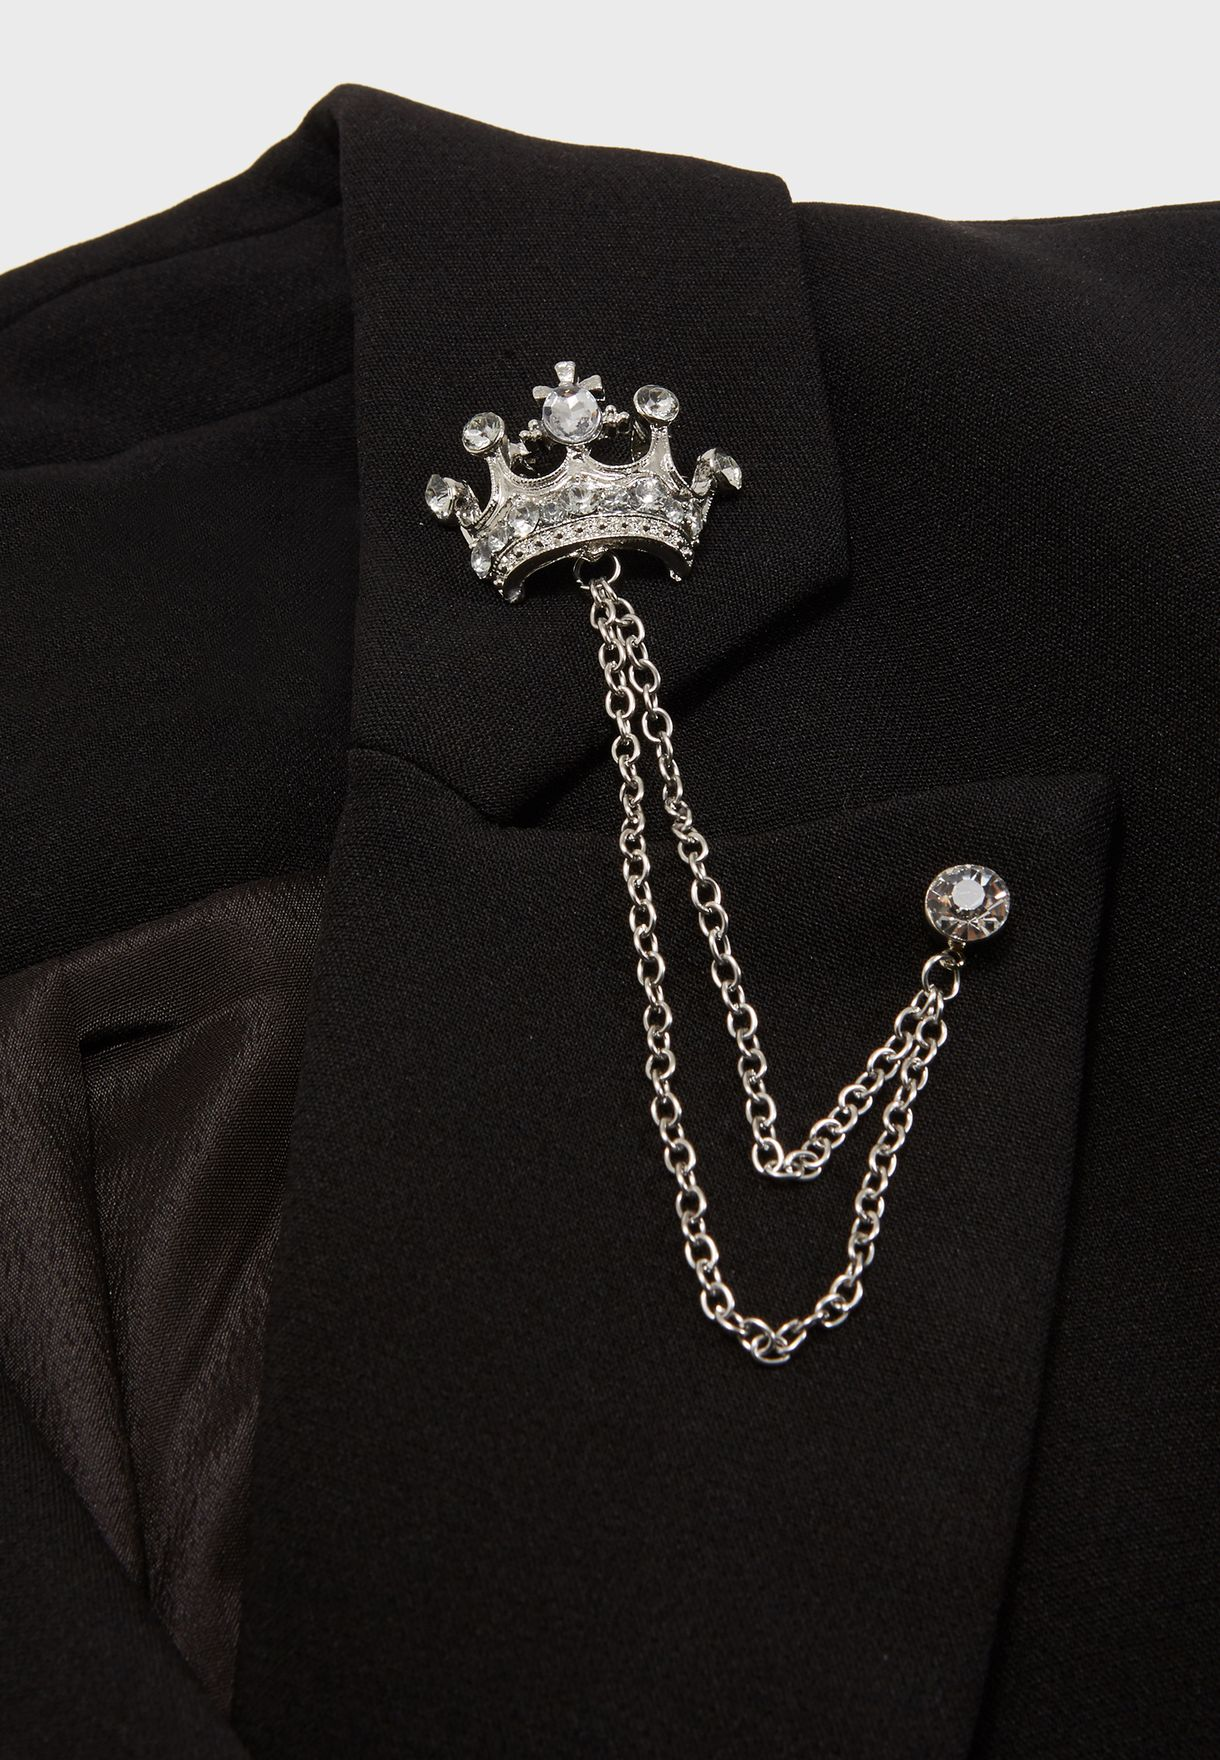 Crown Brooch Lapel Pin Chain